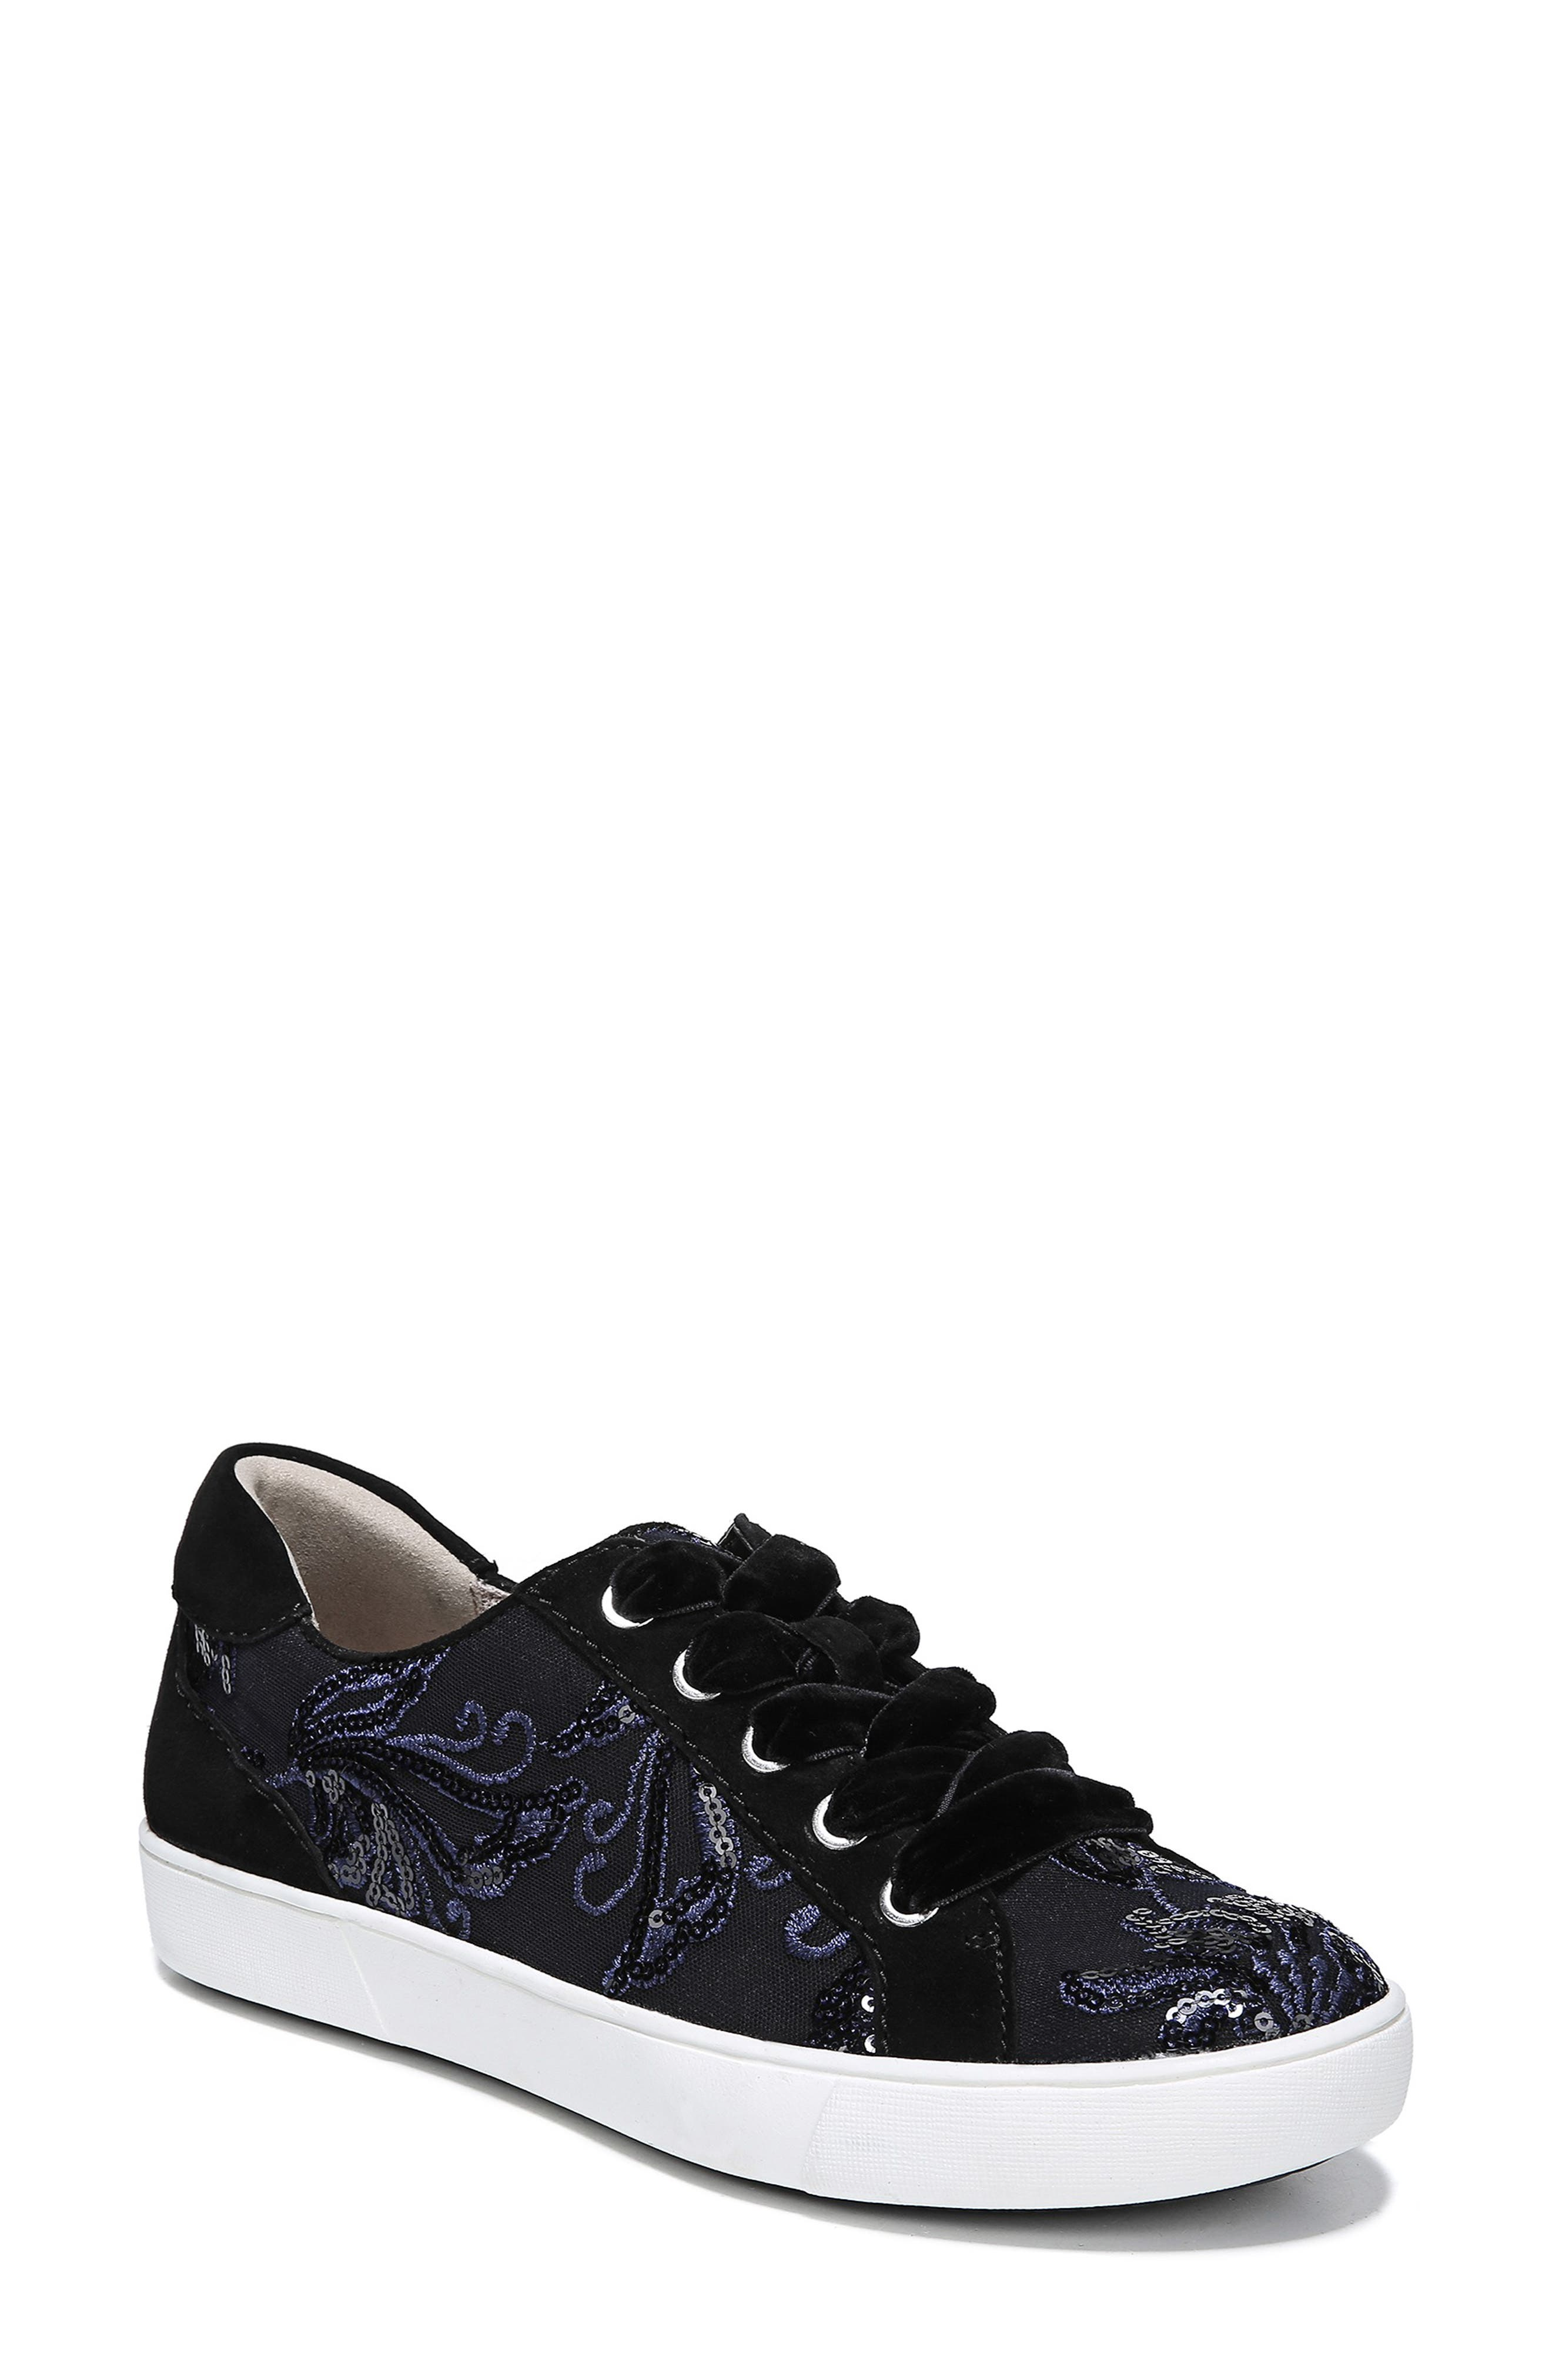 NATURALIZER, Morrison Sneaker, Main thumbnail 1, color, NAVY EMBROIDERED LACE